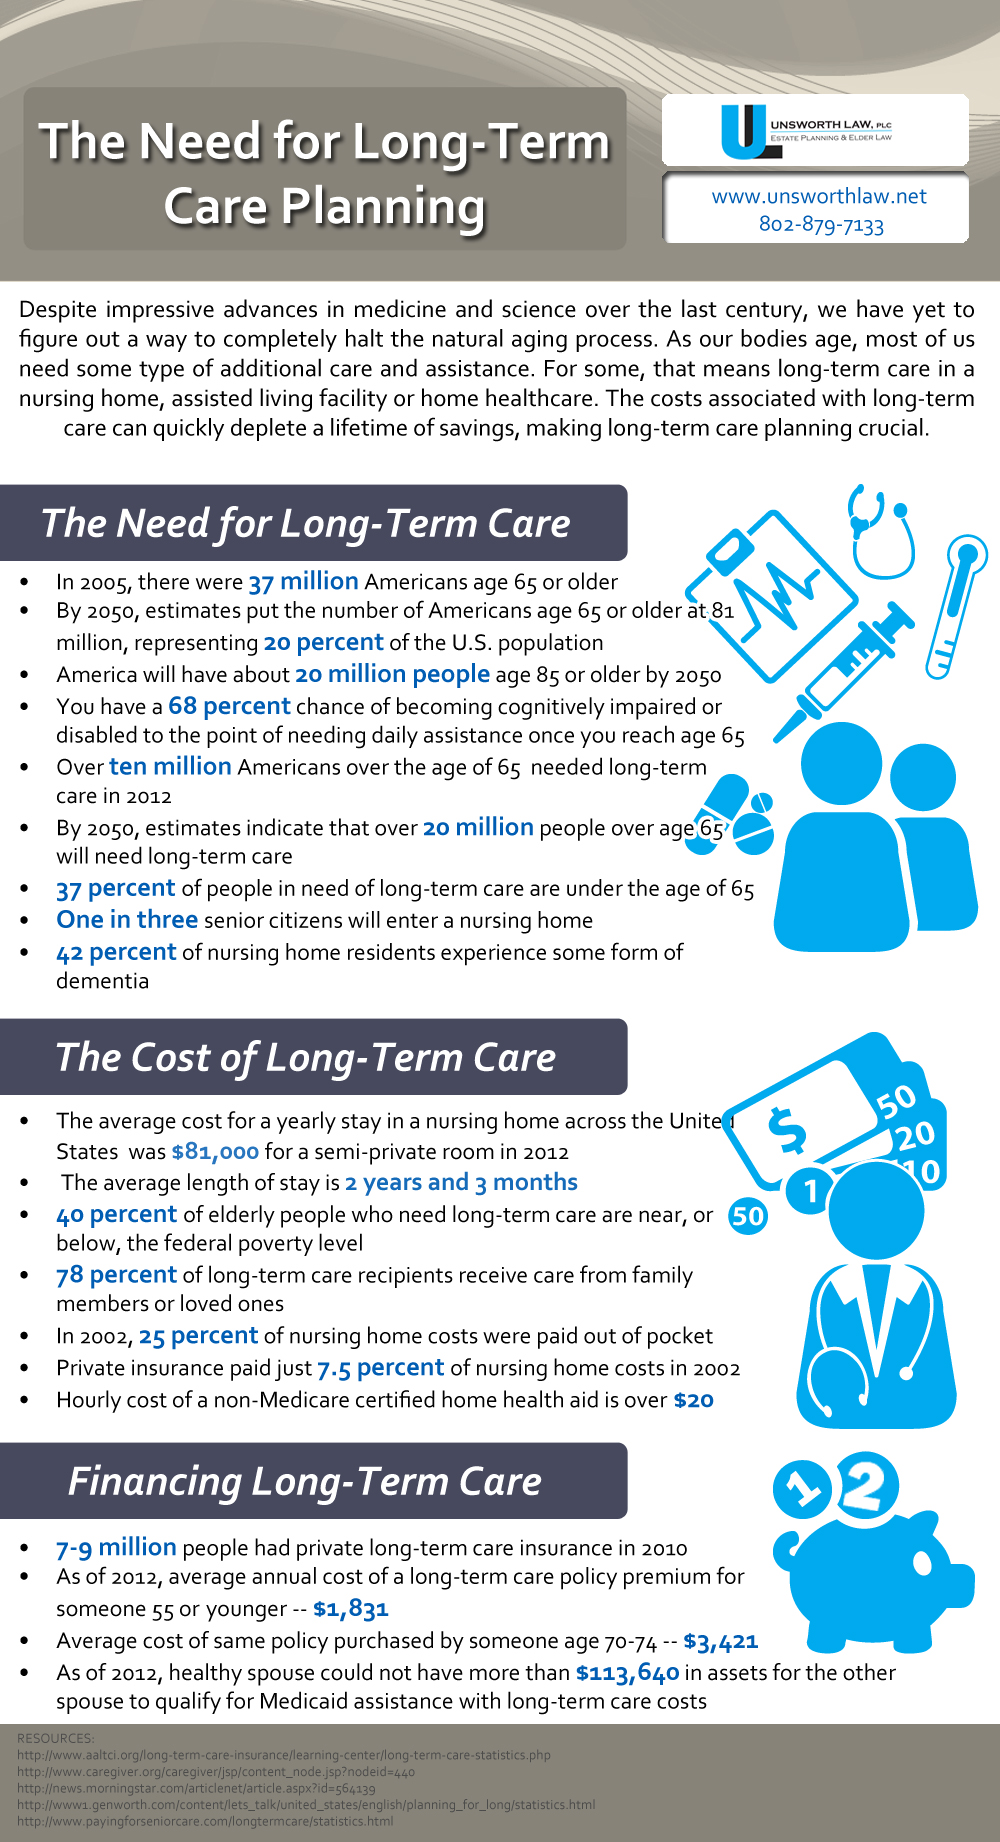 The Need for Long-Term Care Planning